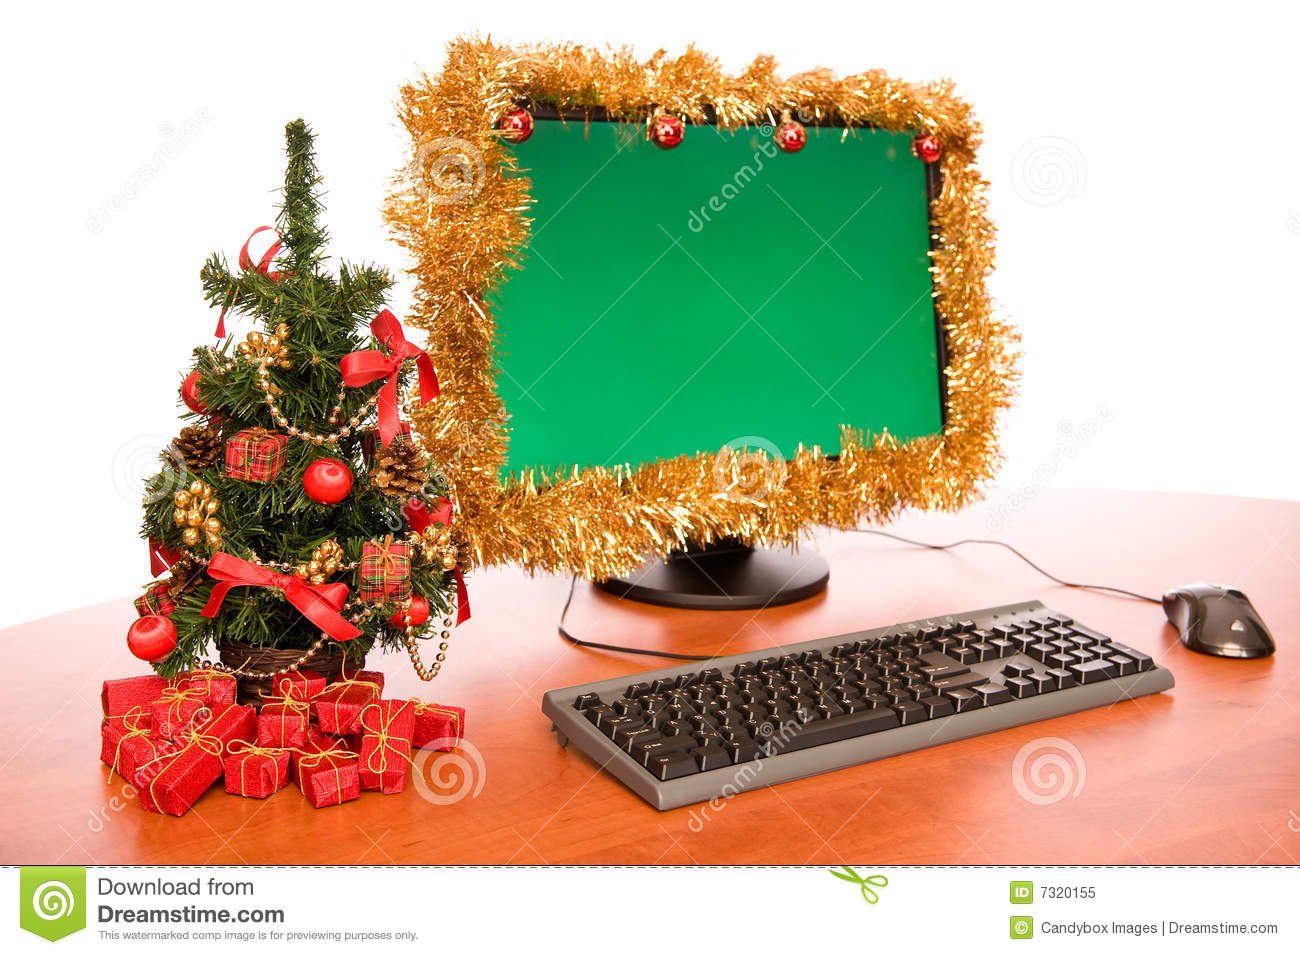 13 - Office Desk Christmas Decorations